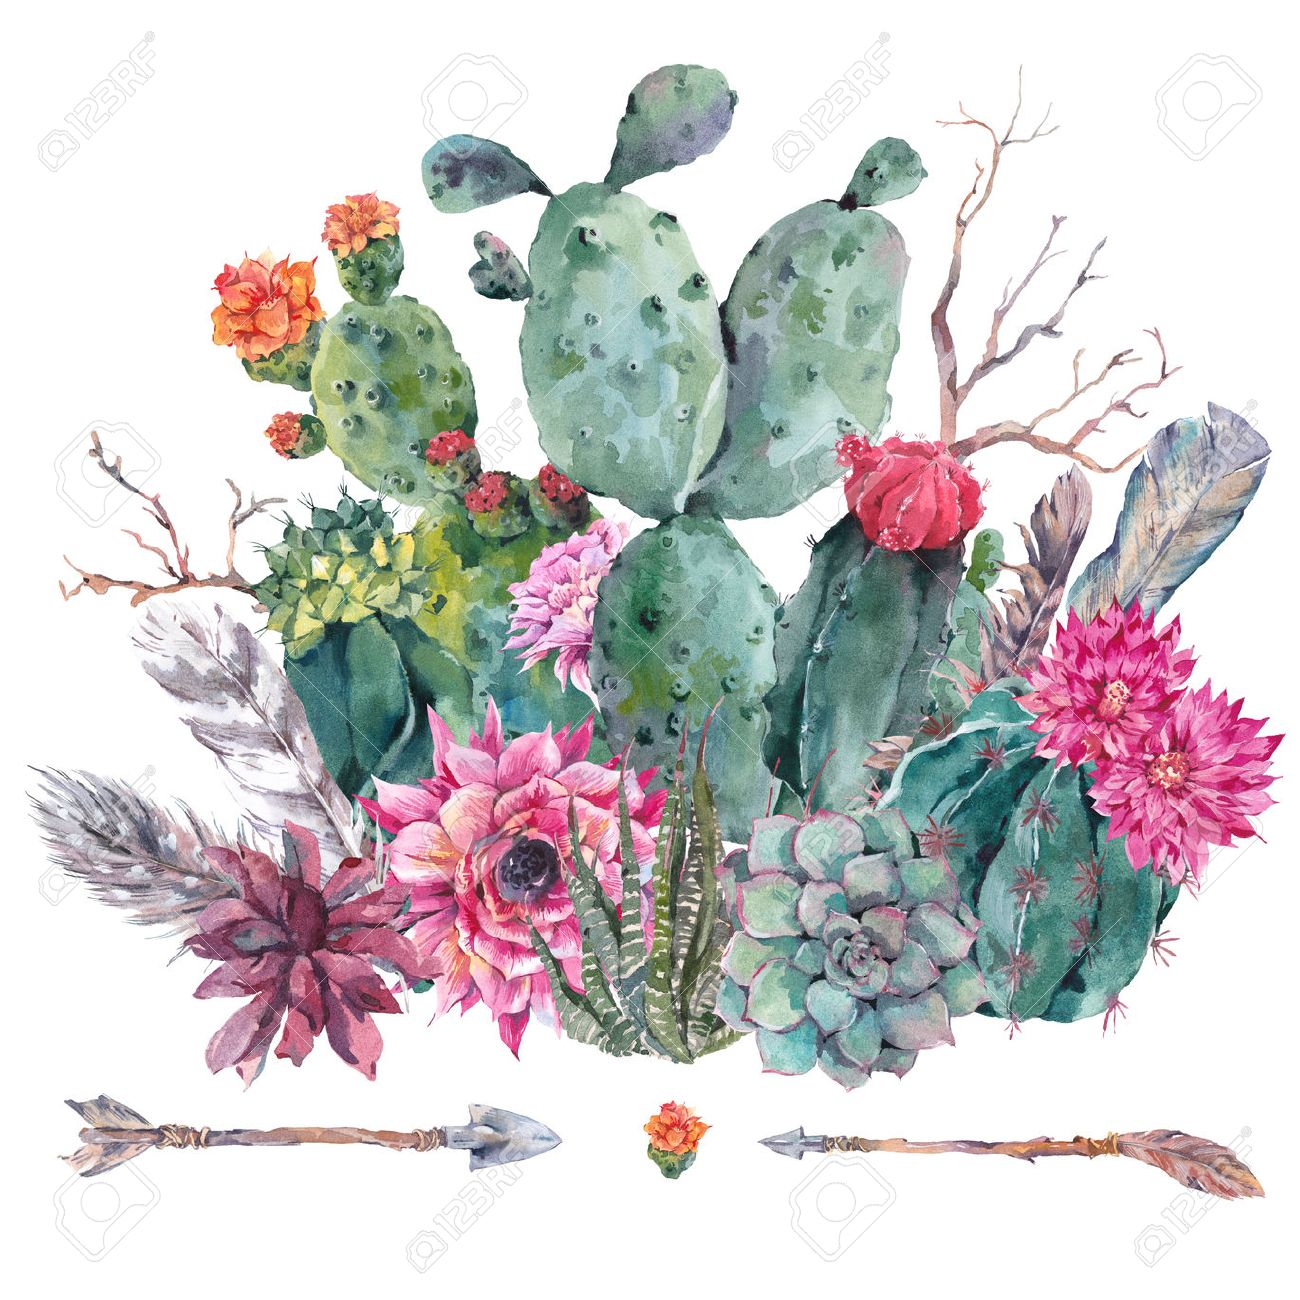 Exotic Natural Vintage Watercolor Bouquet In Boho Style. Cactus ...